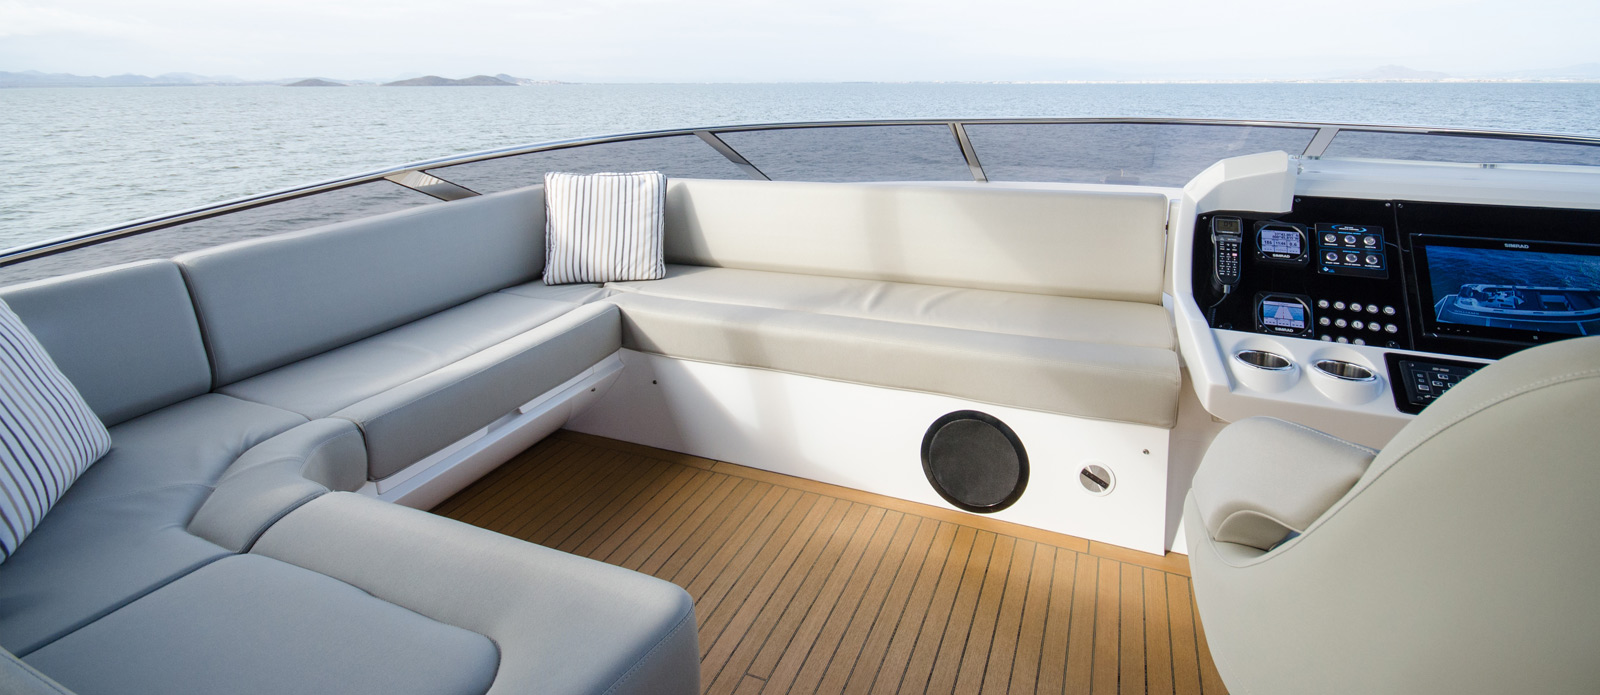 Sunseeker 86 Yacht - Flybridge-Seating